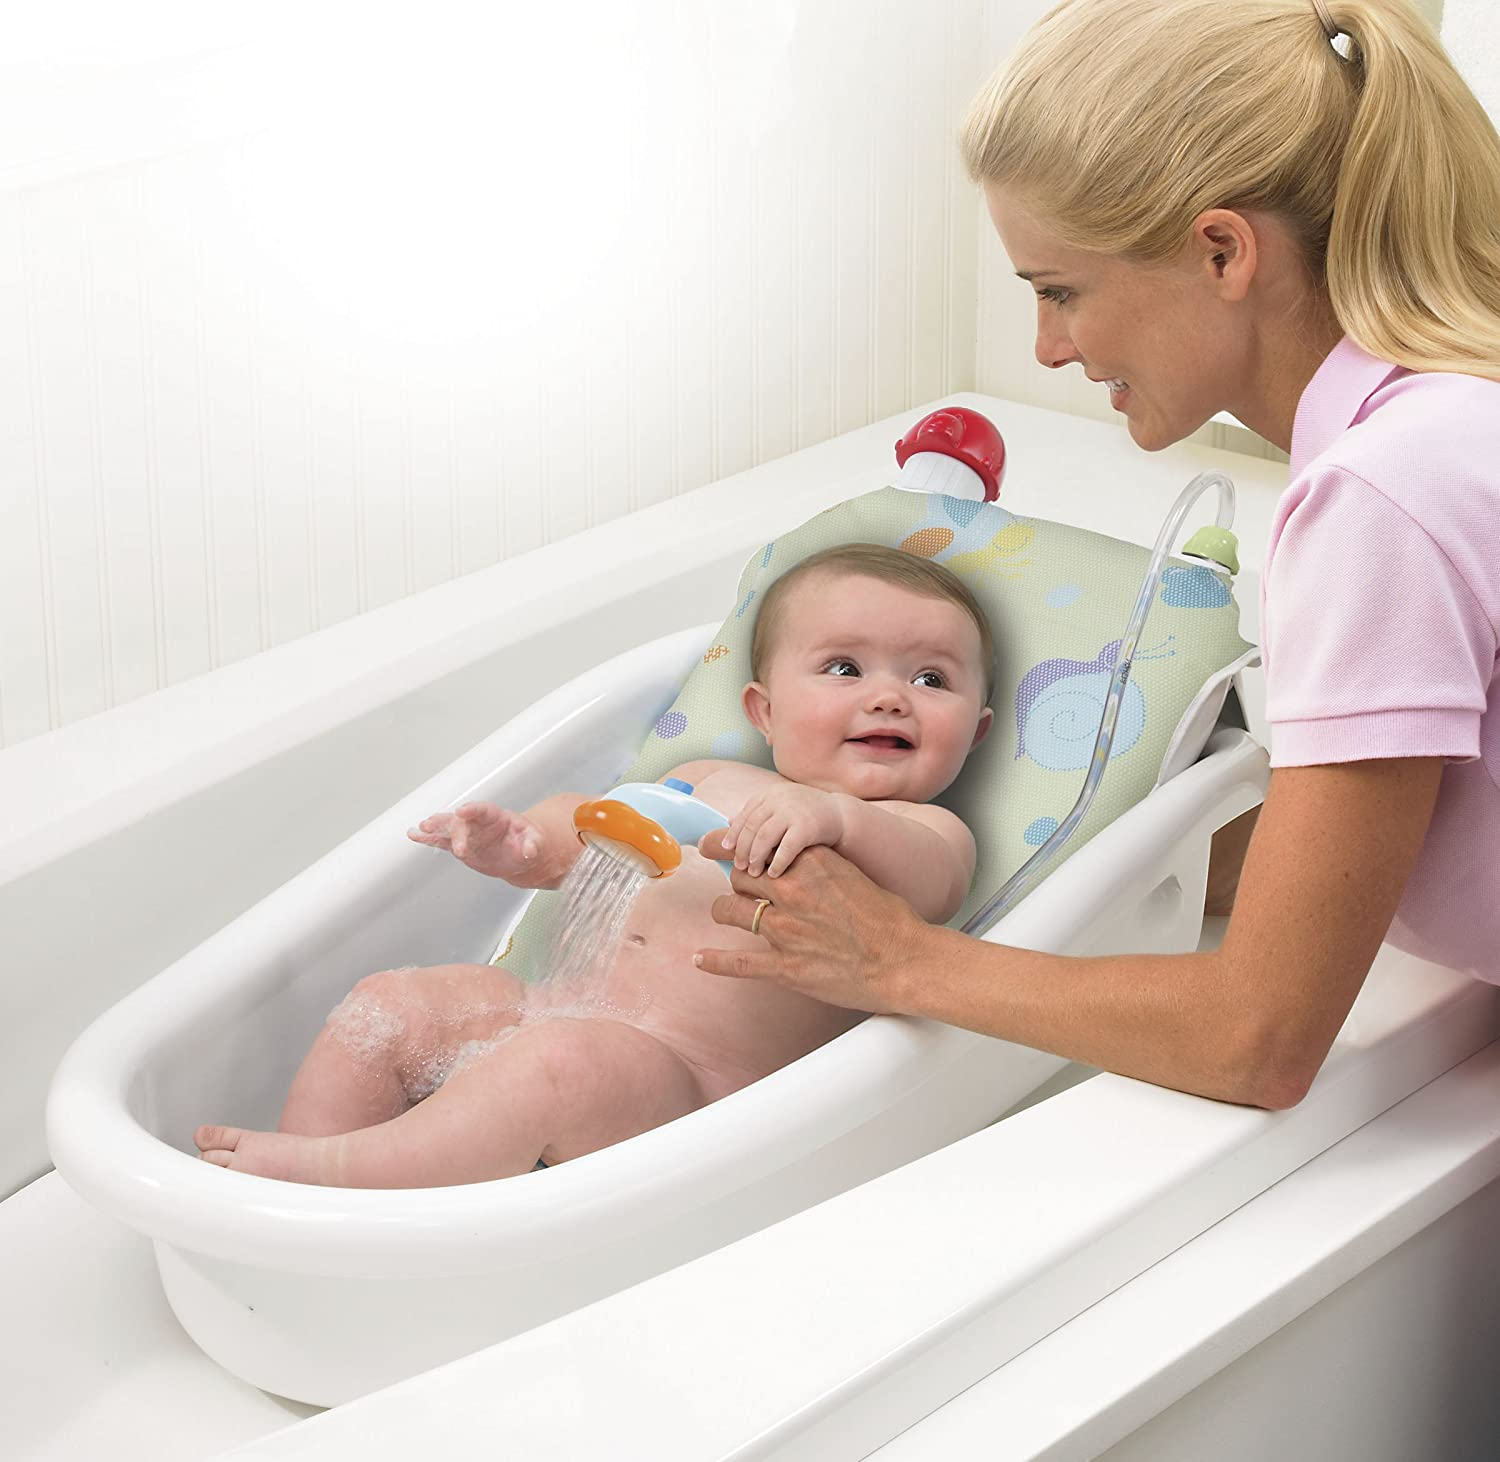 Amazon.com : Safety 1st Warm Me Shower and Bath Tub in White : Baby ...